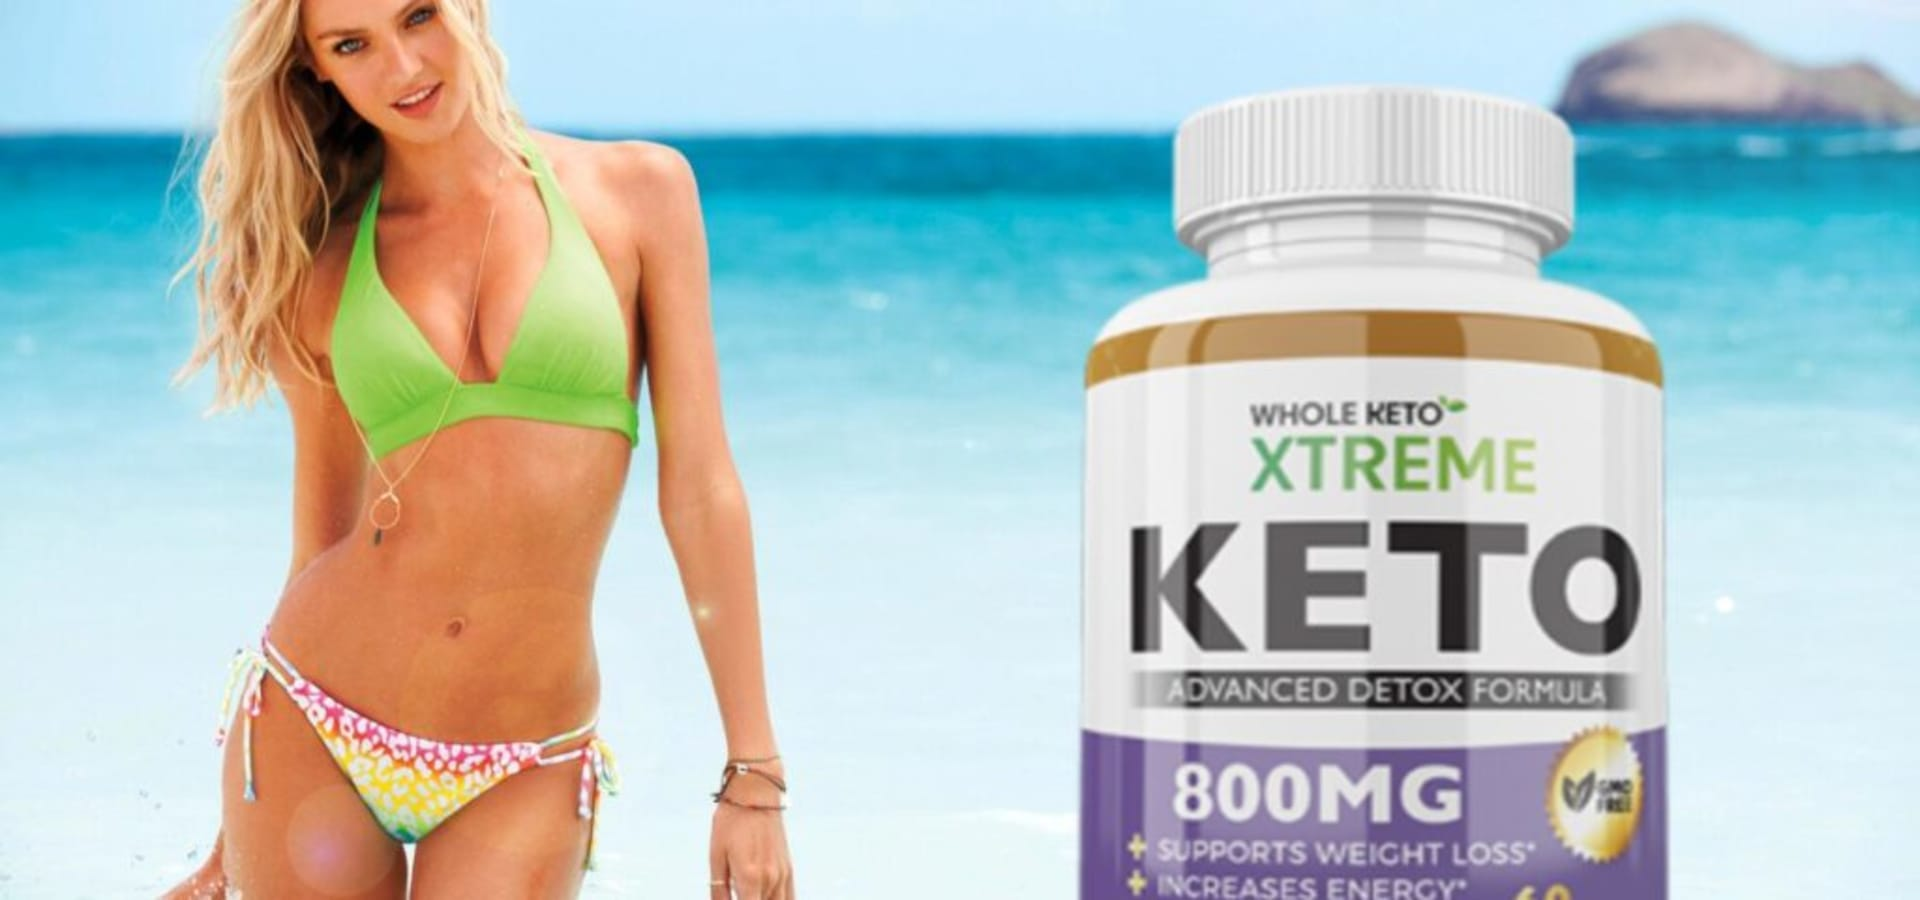 Whole Keto Xtreme : Reviews Does It Works, Weight Loss Pills, Price &  Trial, Where To Buy?   homify